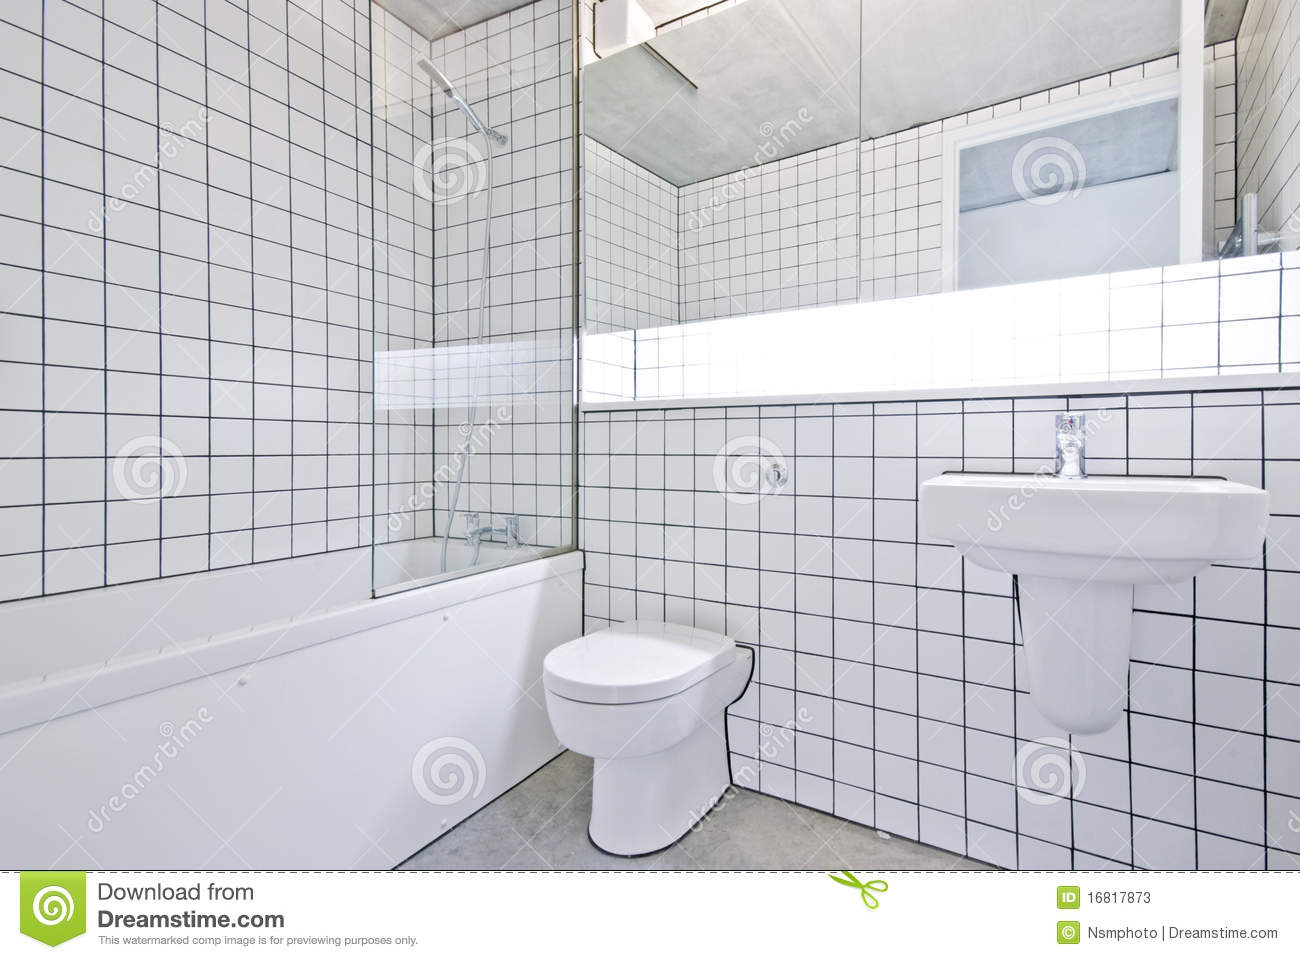 Funky Designer Bathroom In A Warehouse Conversion Stock Photos Image 16817873